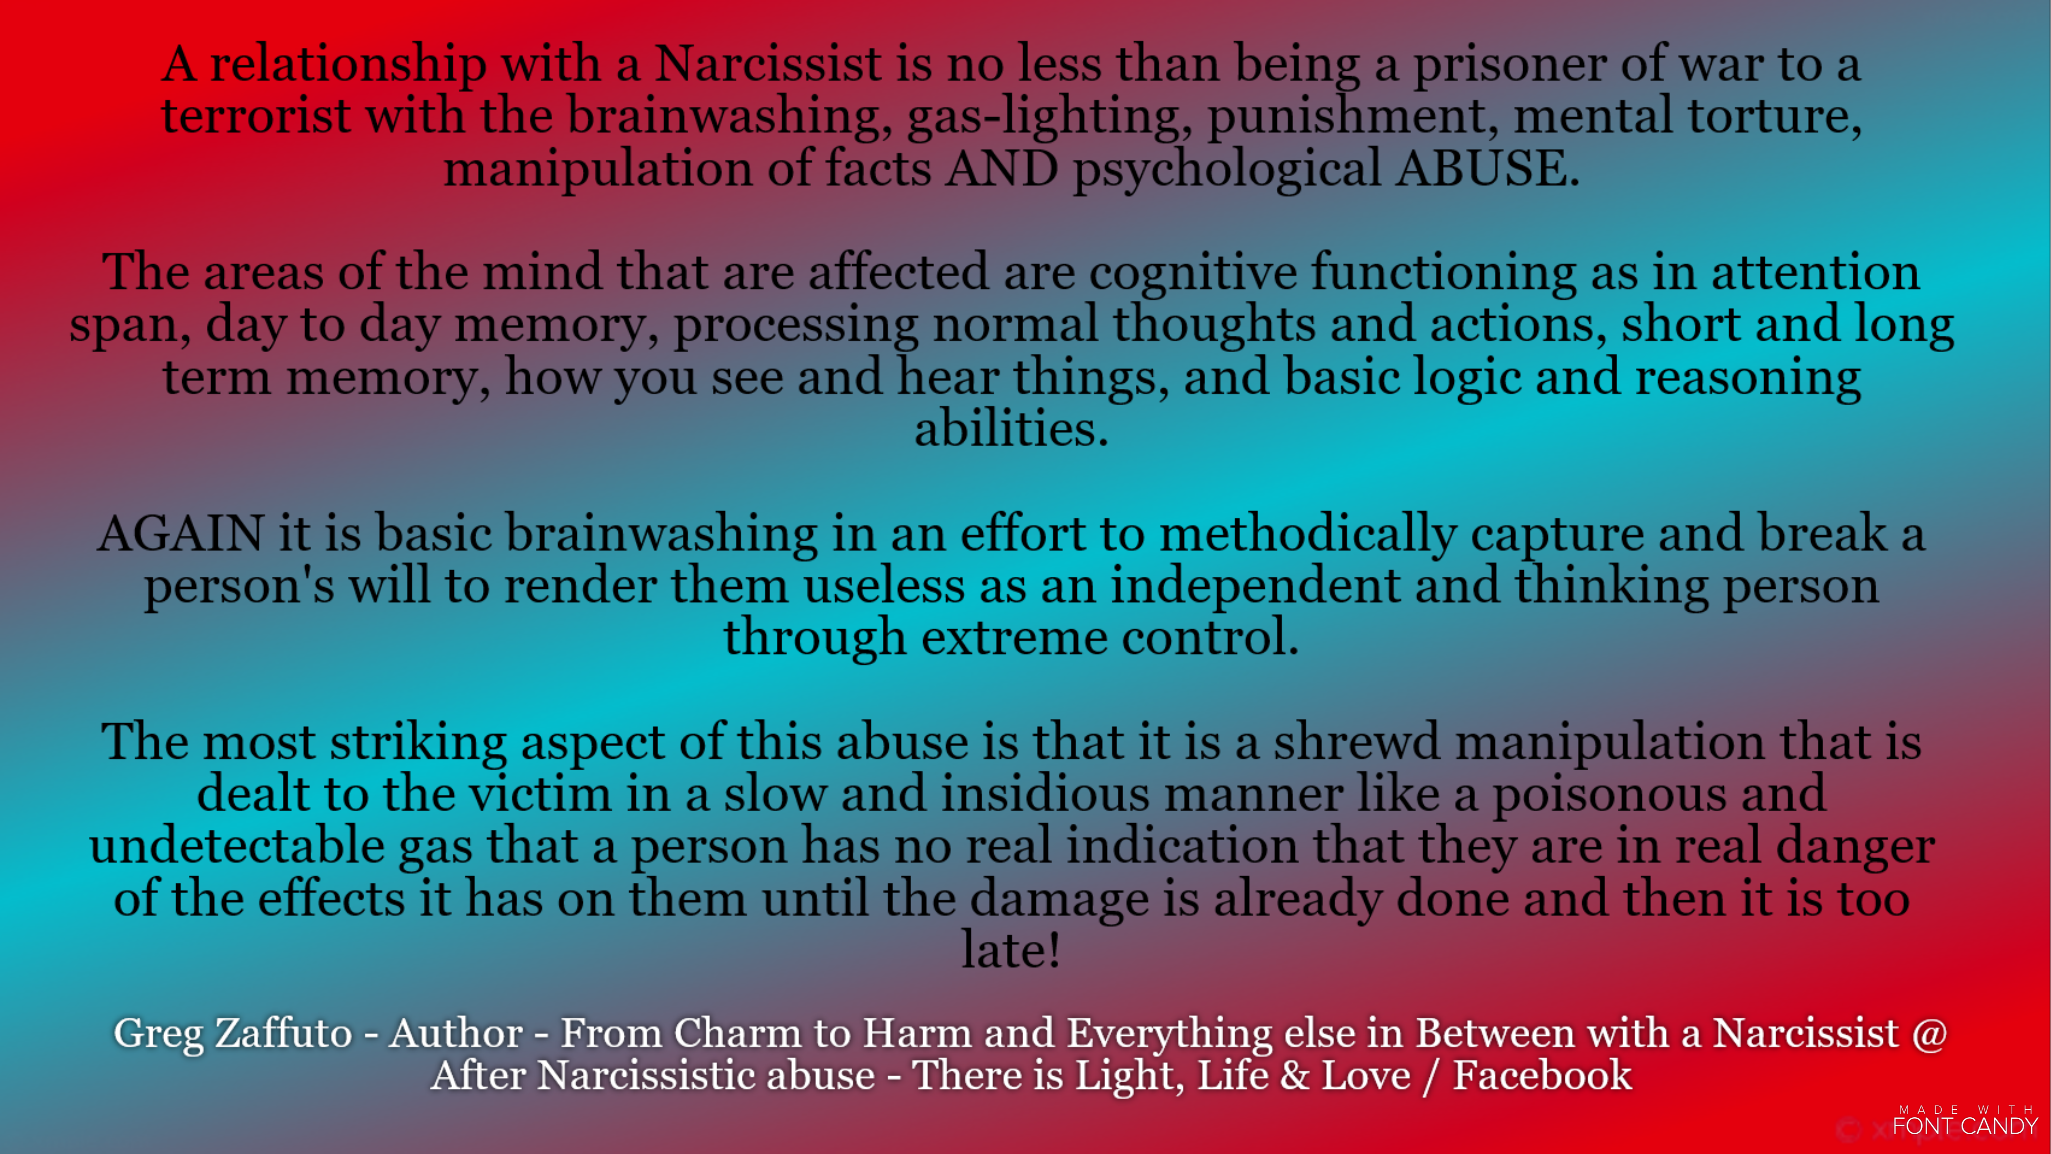 A relationship with a Narcissist is like being a prisoner of war to a cruel and demeaning emotional terrorist. There is no individuality – instead you become an object that is severely manipulated and managed down to serve a personality disordered individual. There is no REAL love only a desperate love that a Narcissist dangles in front of you.